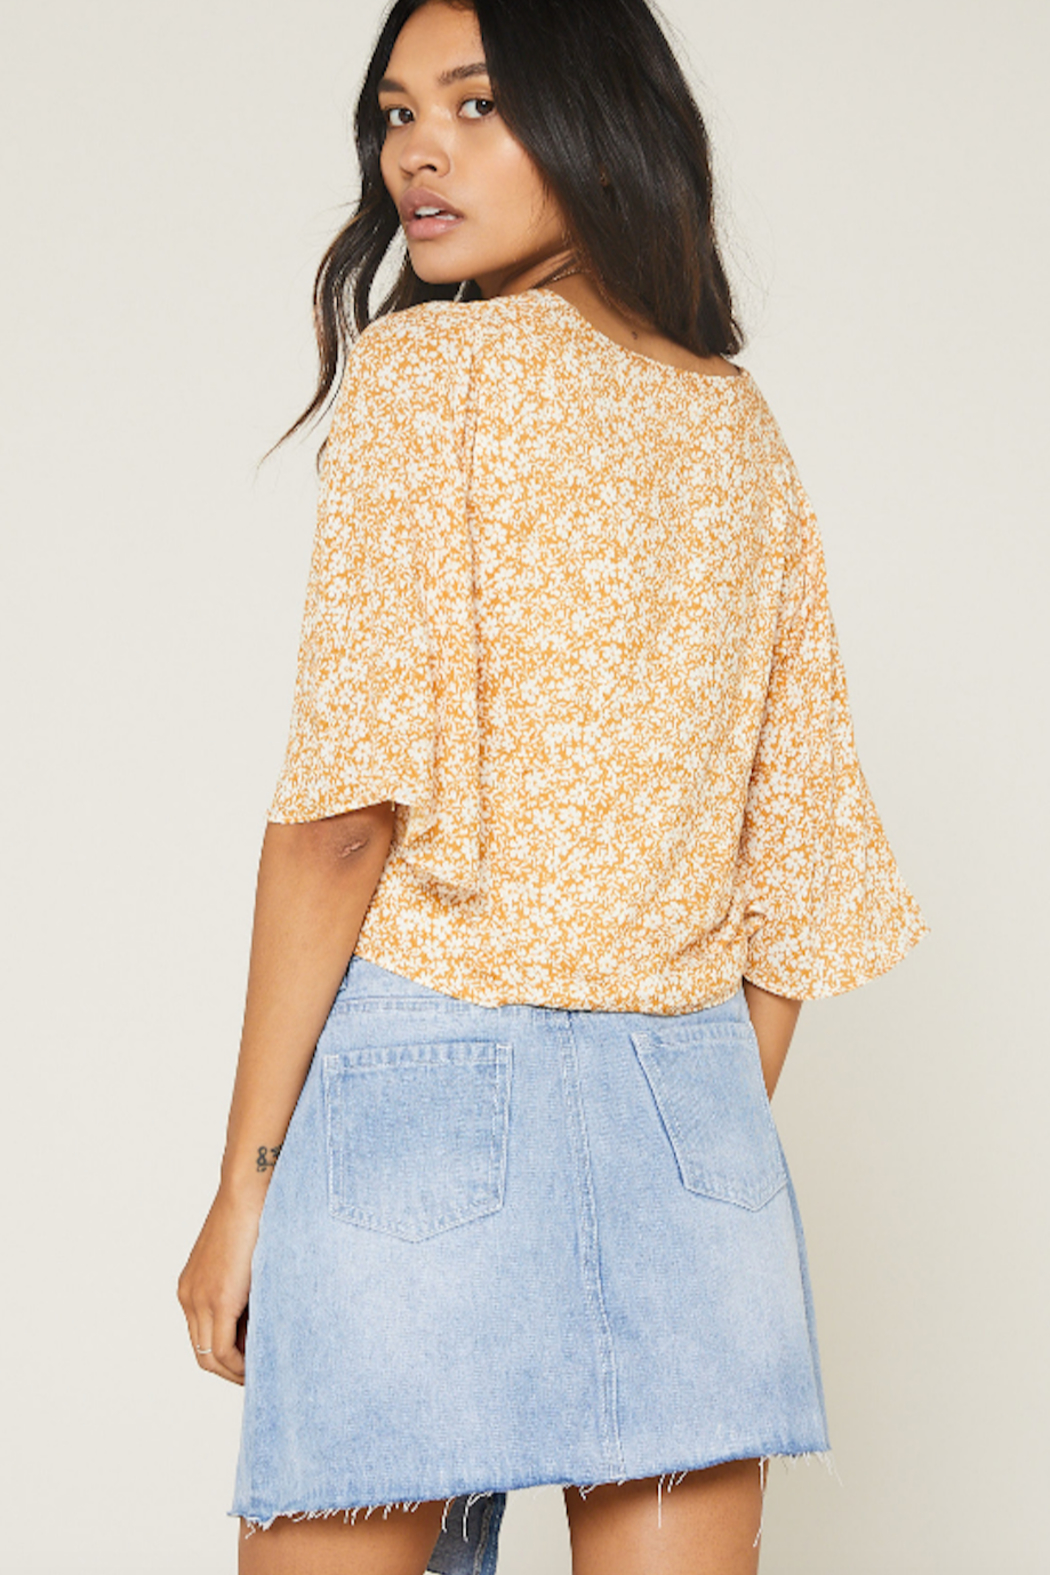 SAGE THE LABEL Wild Honey Knot Front Top - Front Full Image